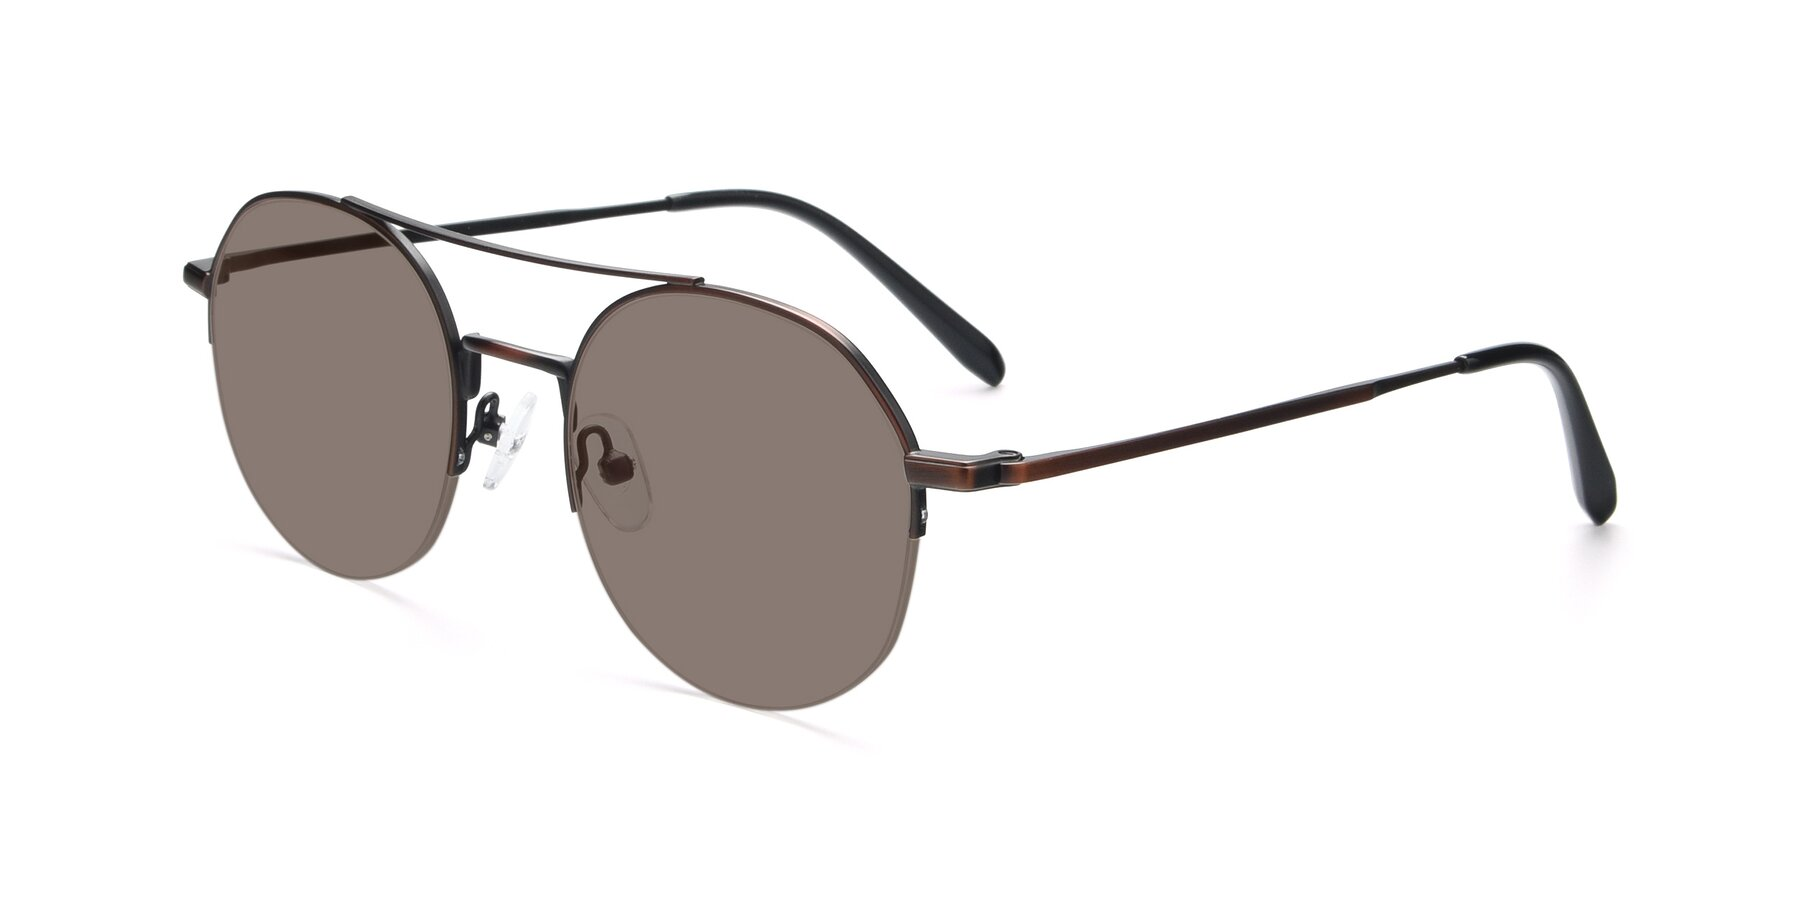 Angle of 9521 in Brown with Medium Brown Tinted Lenses